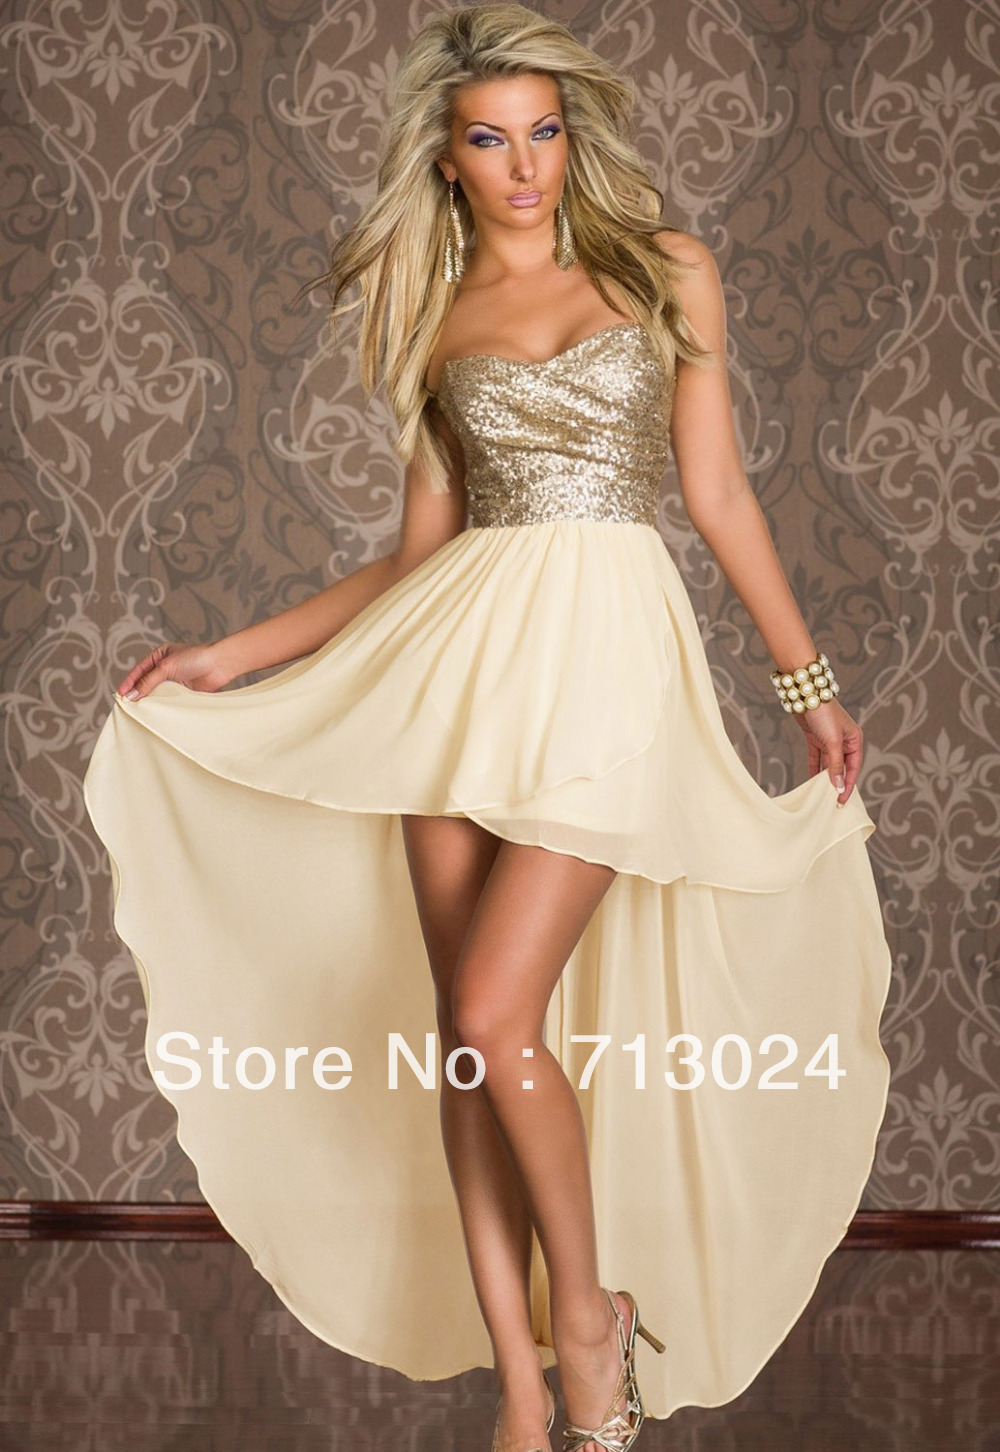 Fashion New Summer Women Sexy Charming Boulevard Sequined Long Cocktail Dress Beige Black Patchwork Dresses 6153 Free Shipping -in Apparel & Accessories on Aliexpress.com